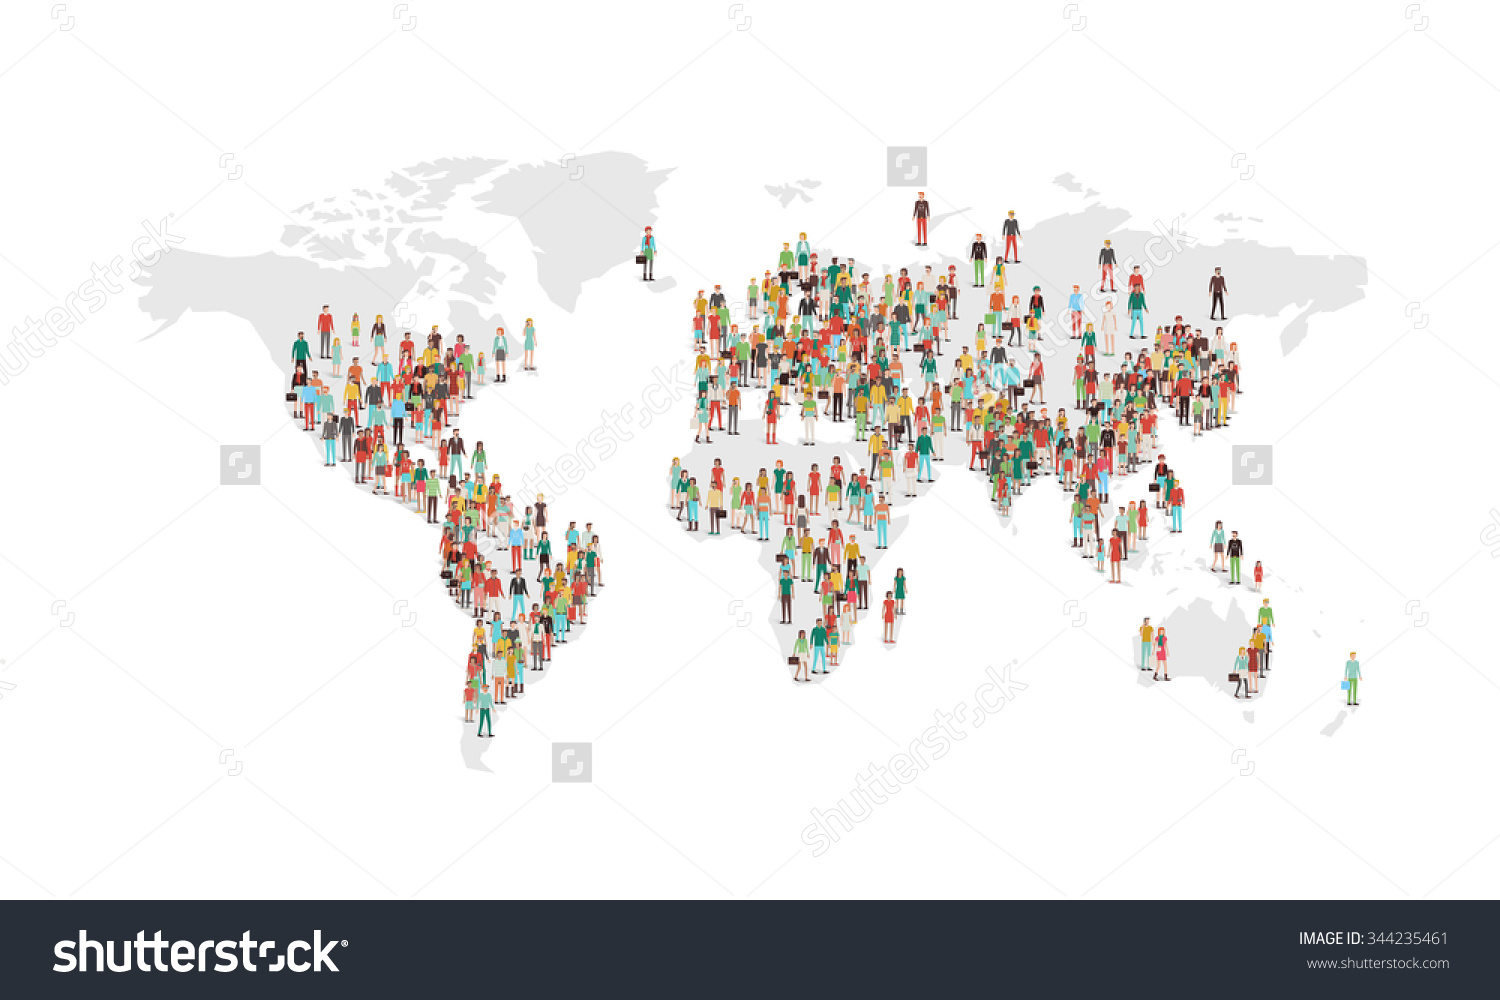 World population map clipart clip free library World Population Density Map Vector Characters Stock Vector ... clip free library